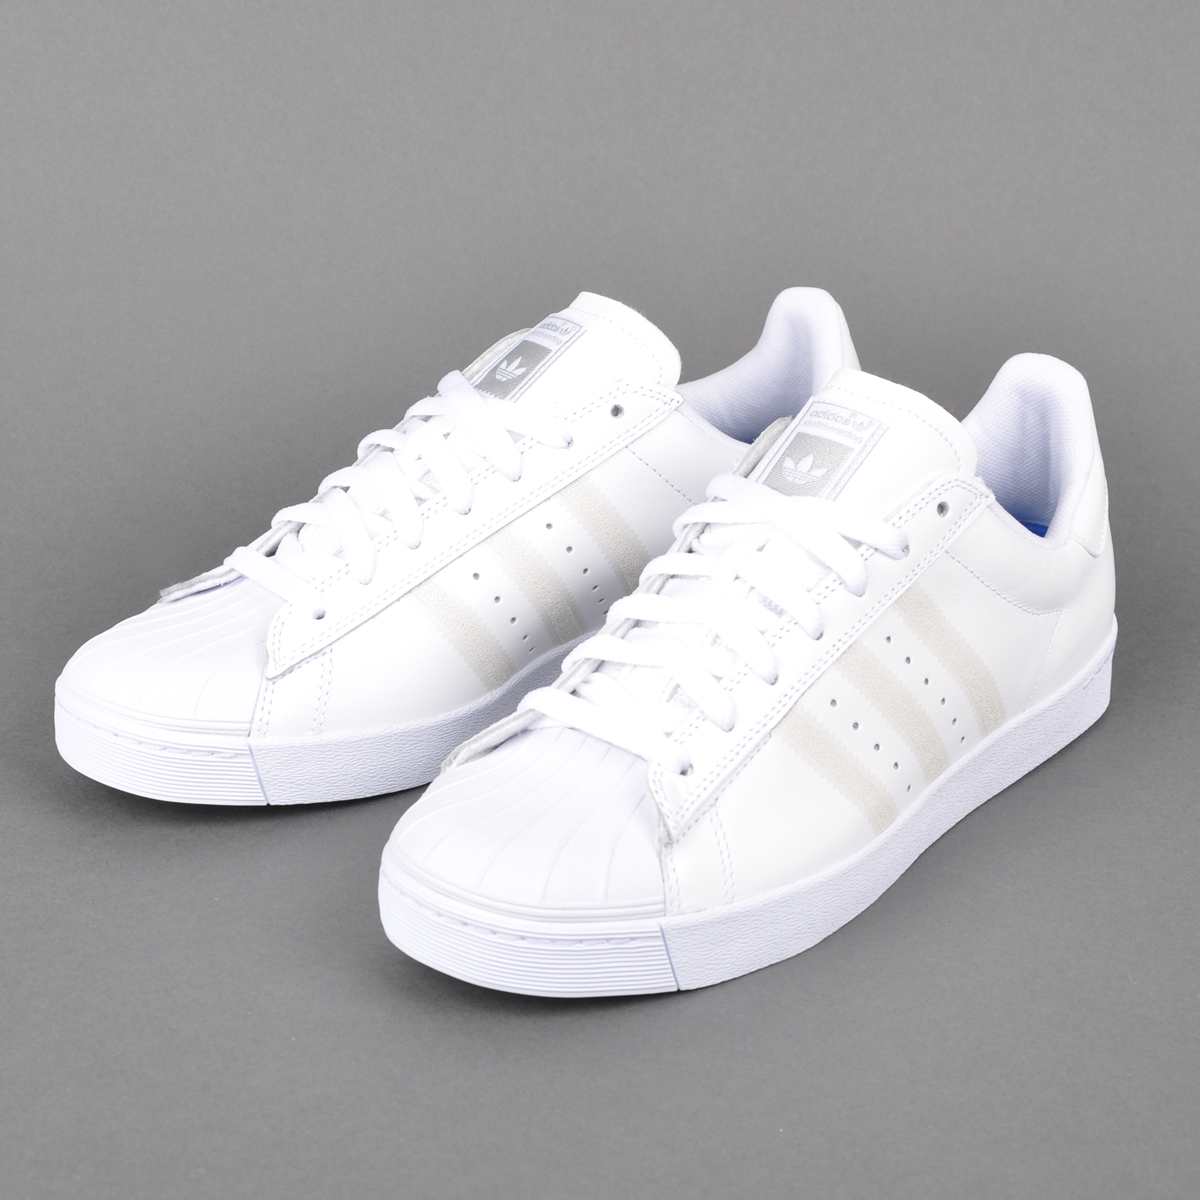 lovely Adidas Men's Superstar Vulc Adv Skate Shoe lions muenster